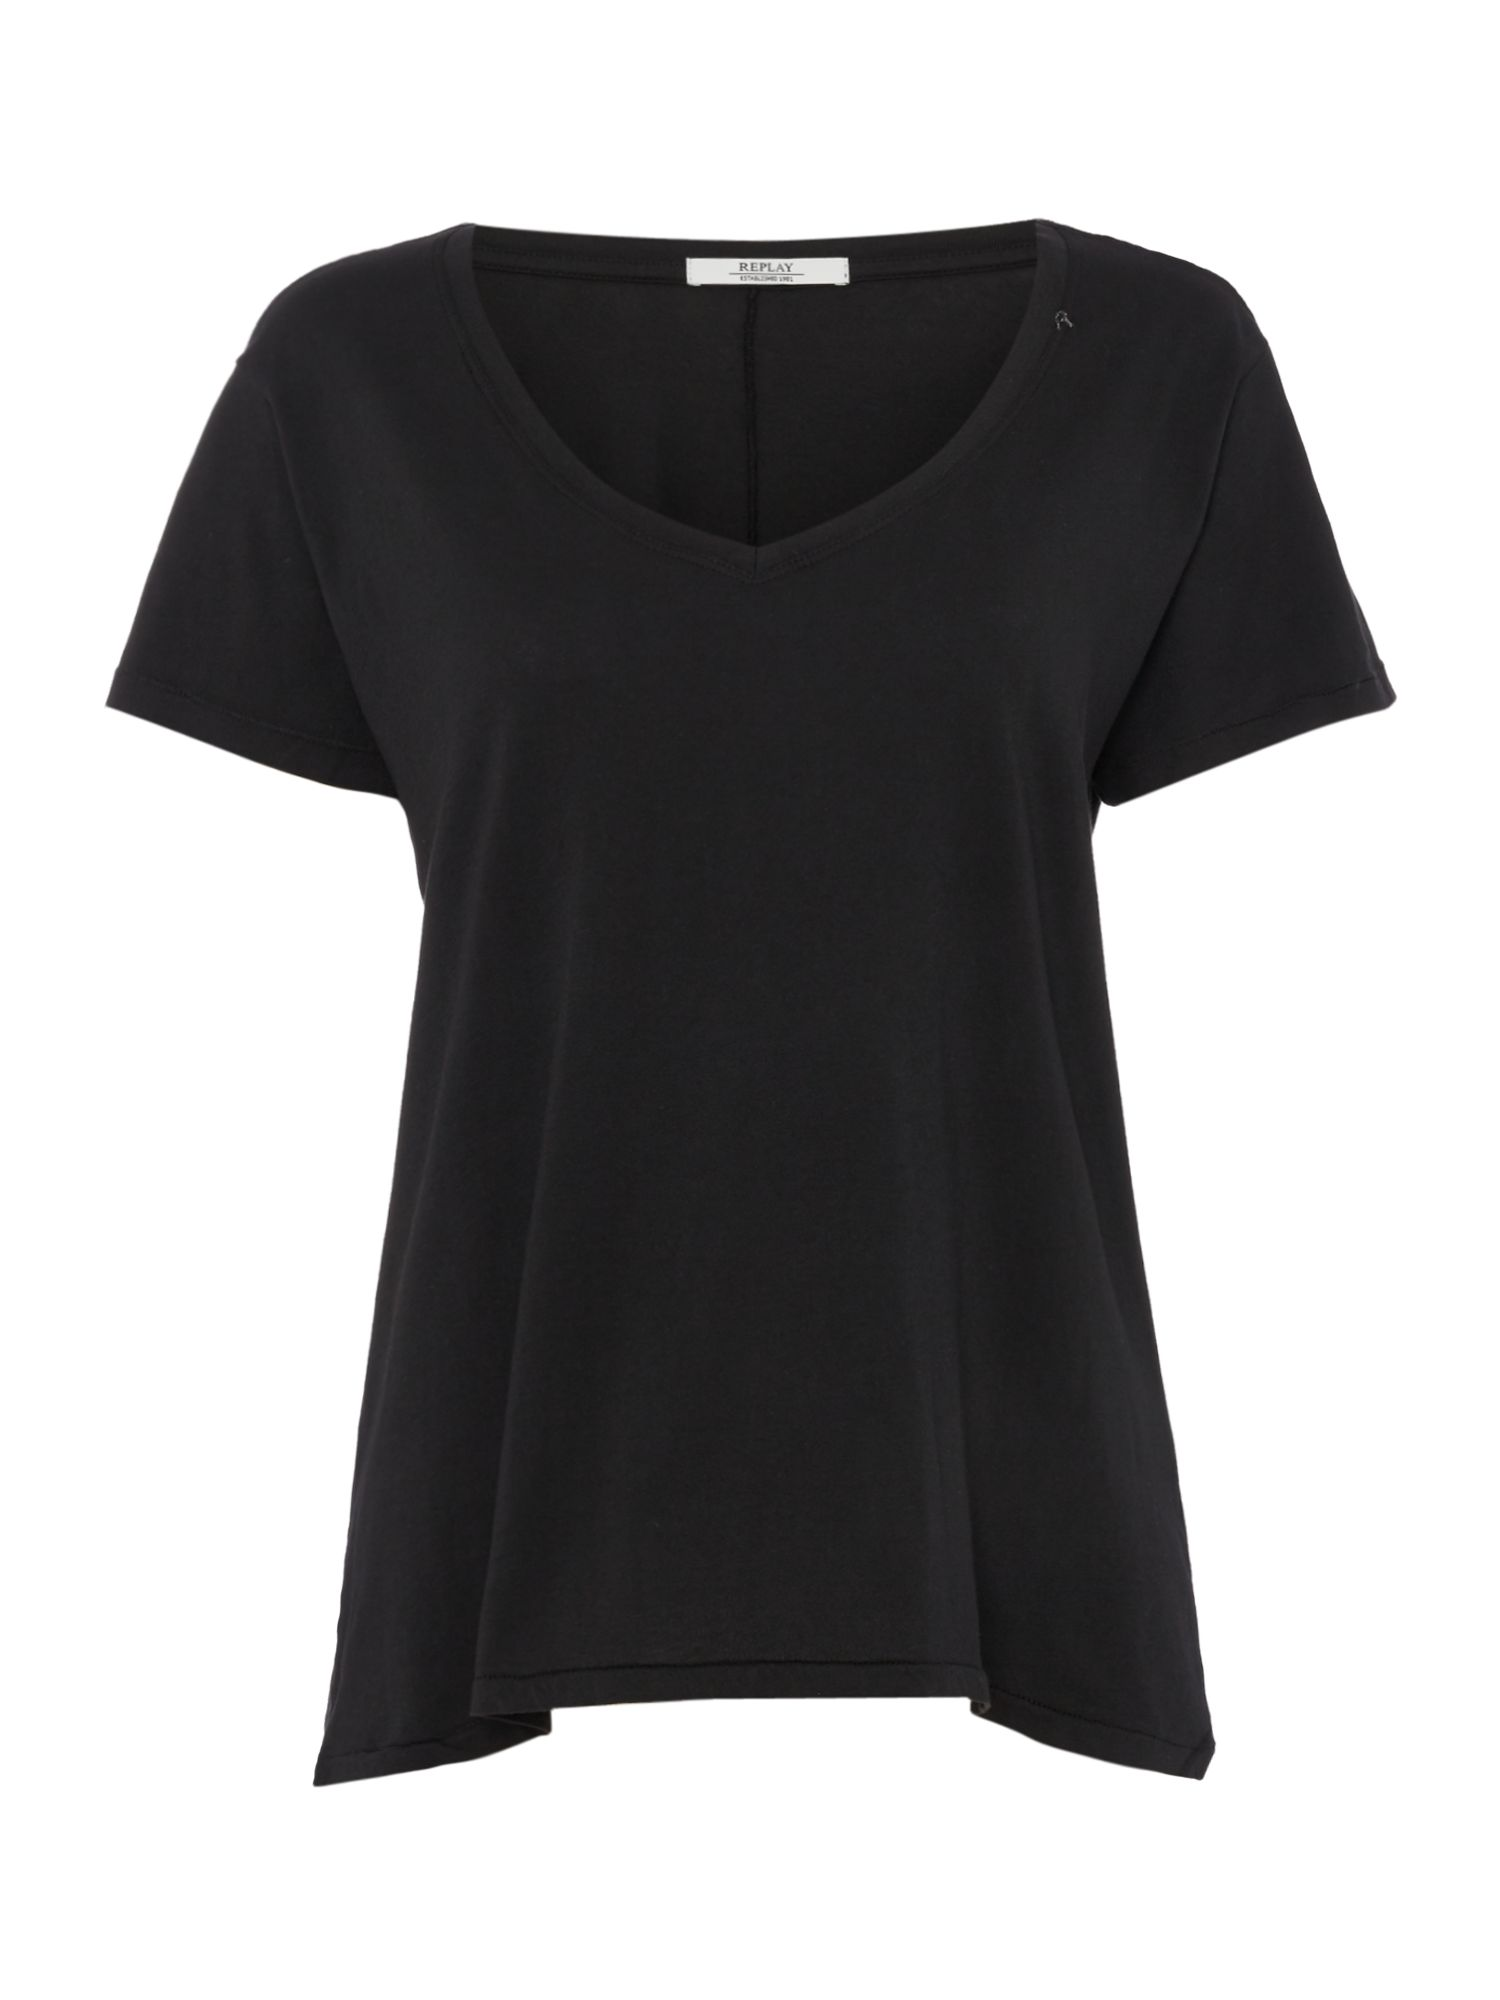 Replay Garment-Dyed Cotton T-Shirt, Black